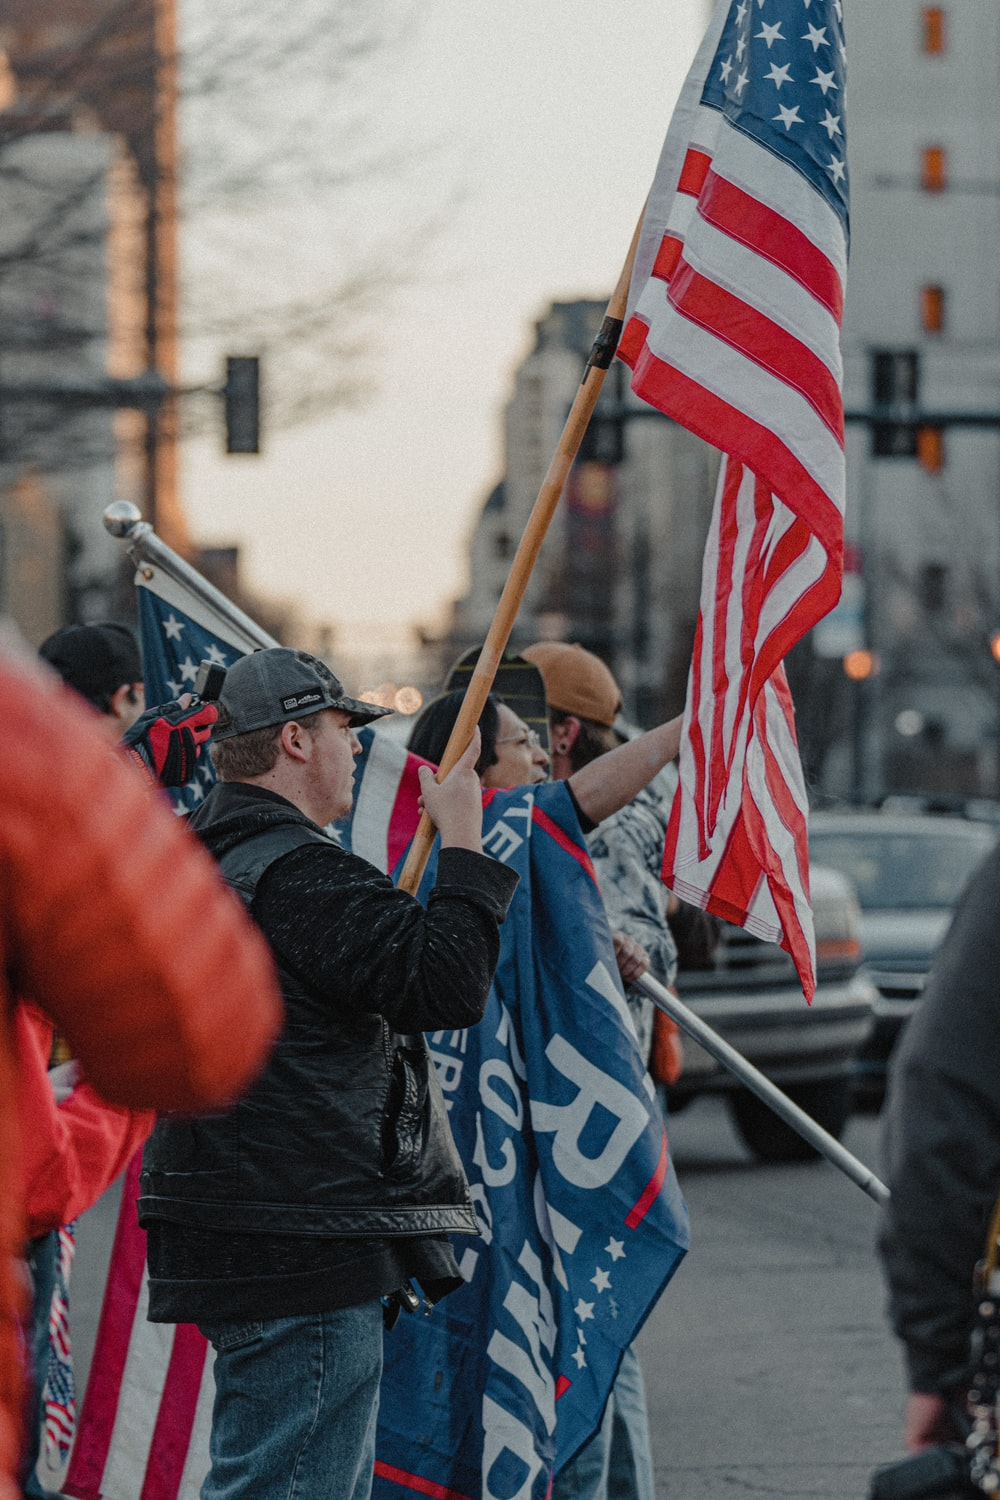 man in blue jacket holding flag of us a during daytime